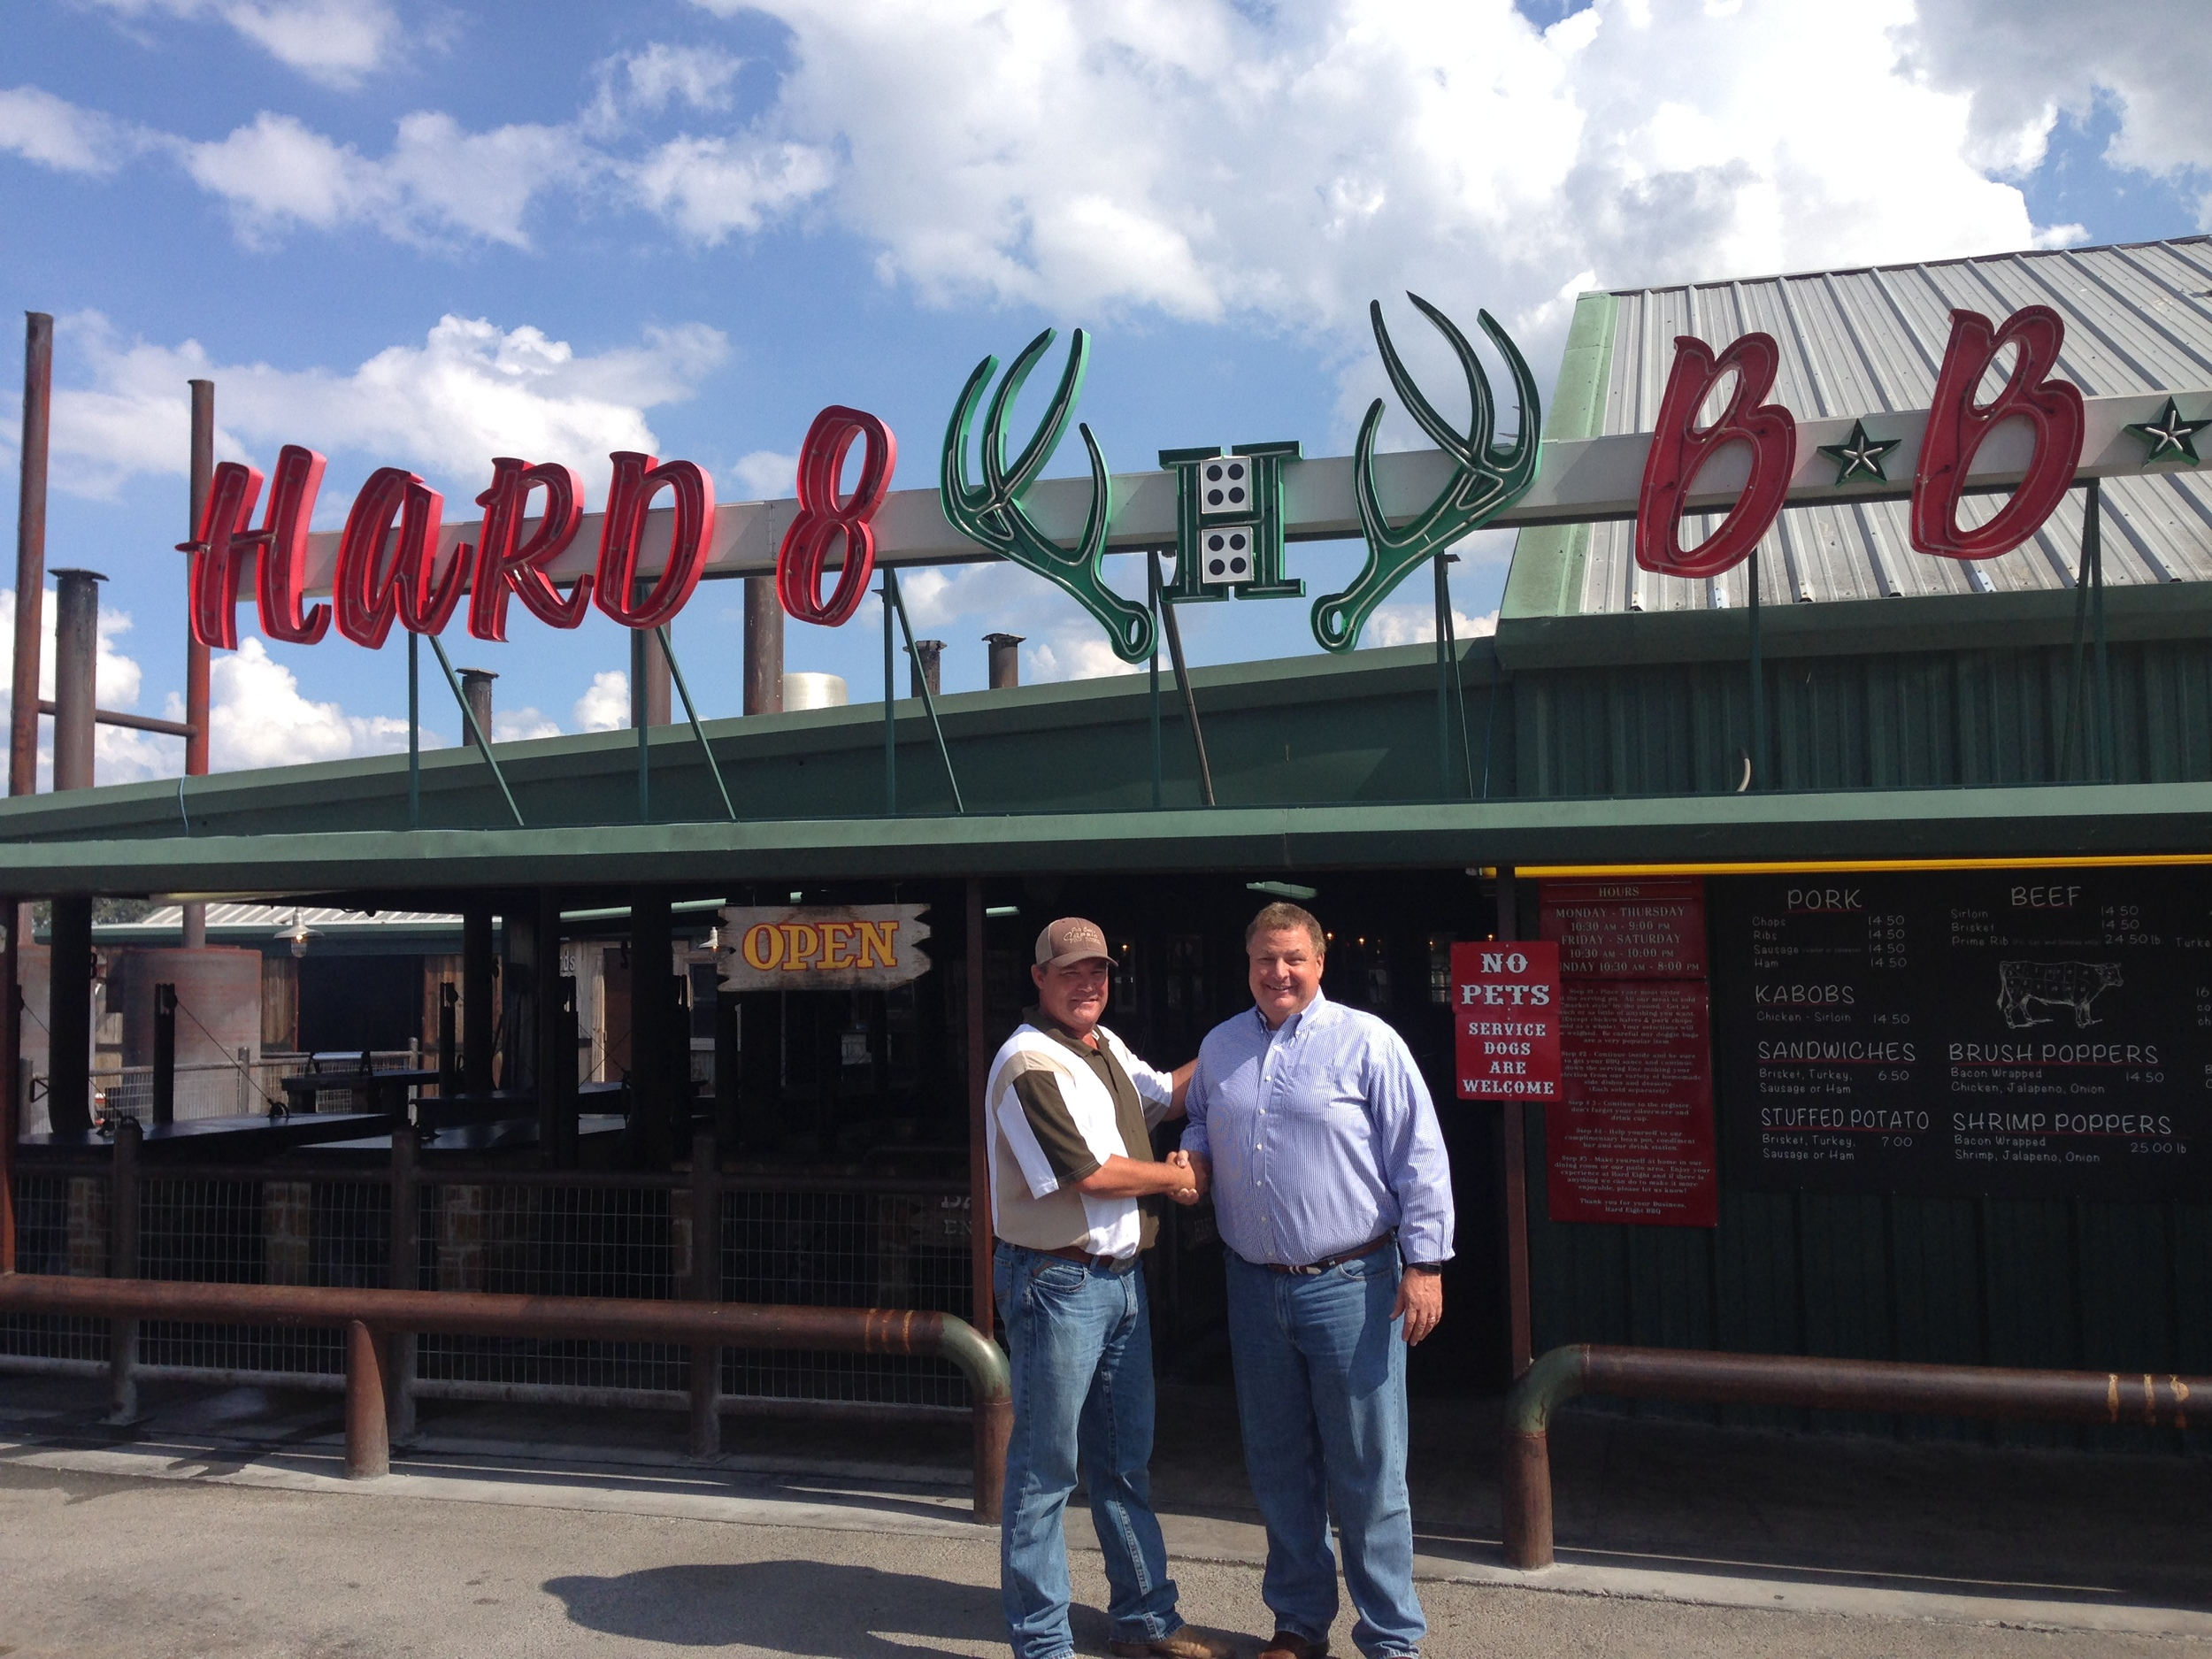 Hard Eight BBQ signed as a new tenant at Grandscape